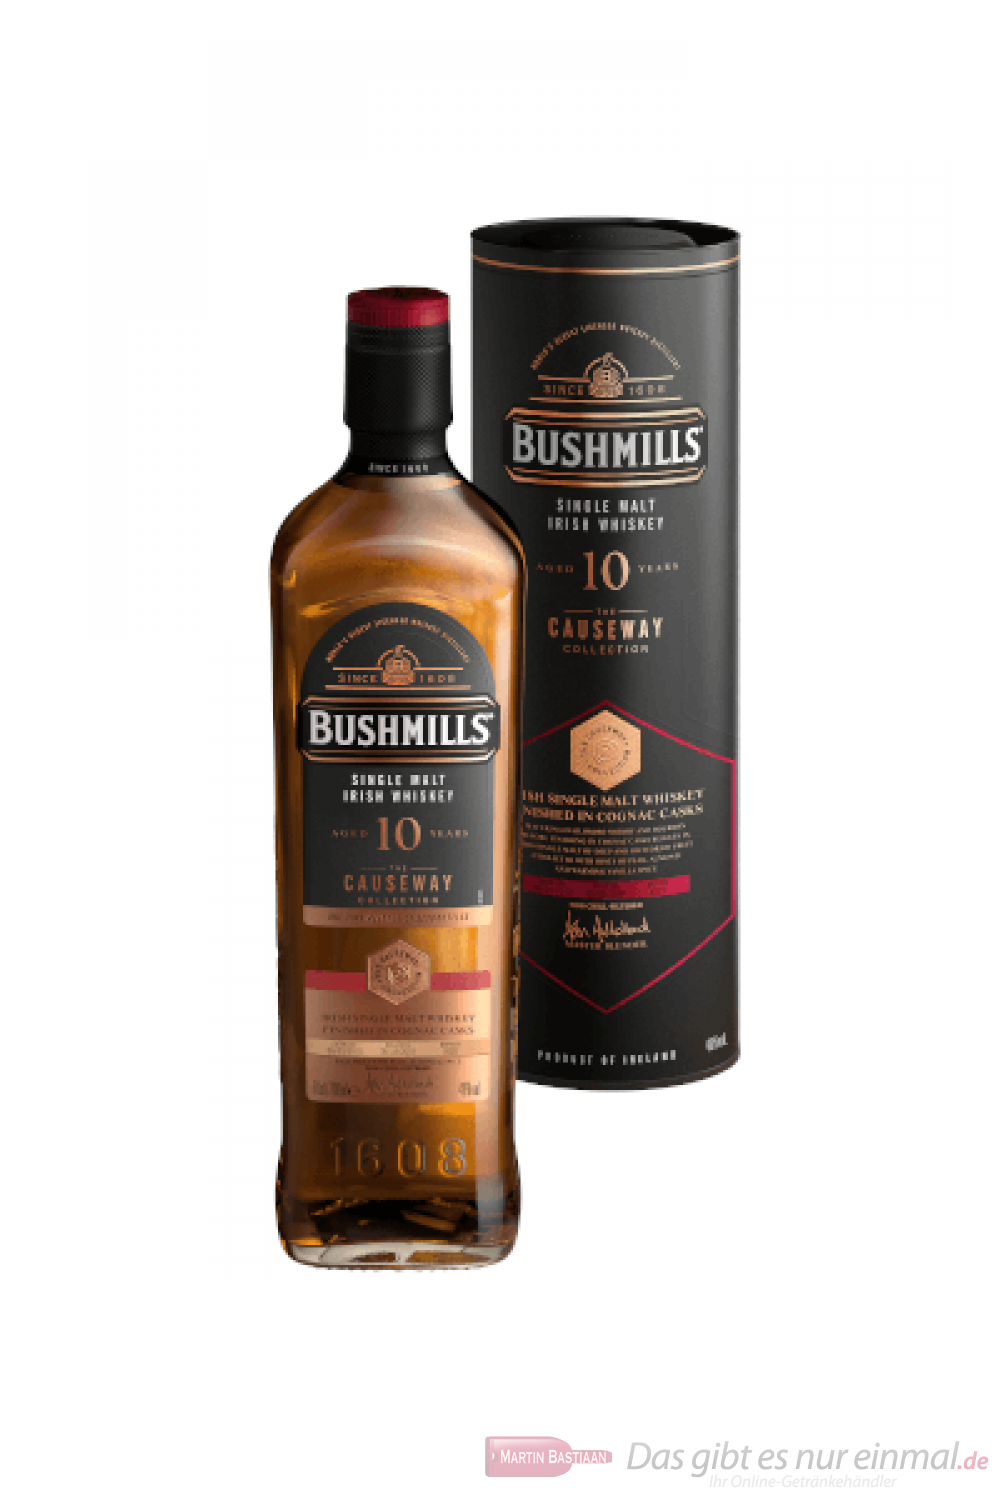 Bushmills Causeway Collection Cognac Cask 10 Years Irish Whiskey 0,7l